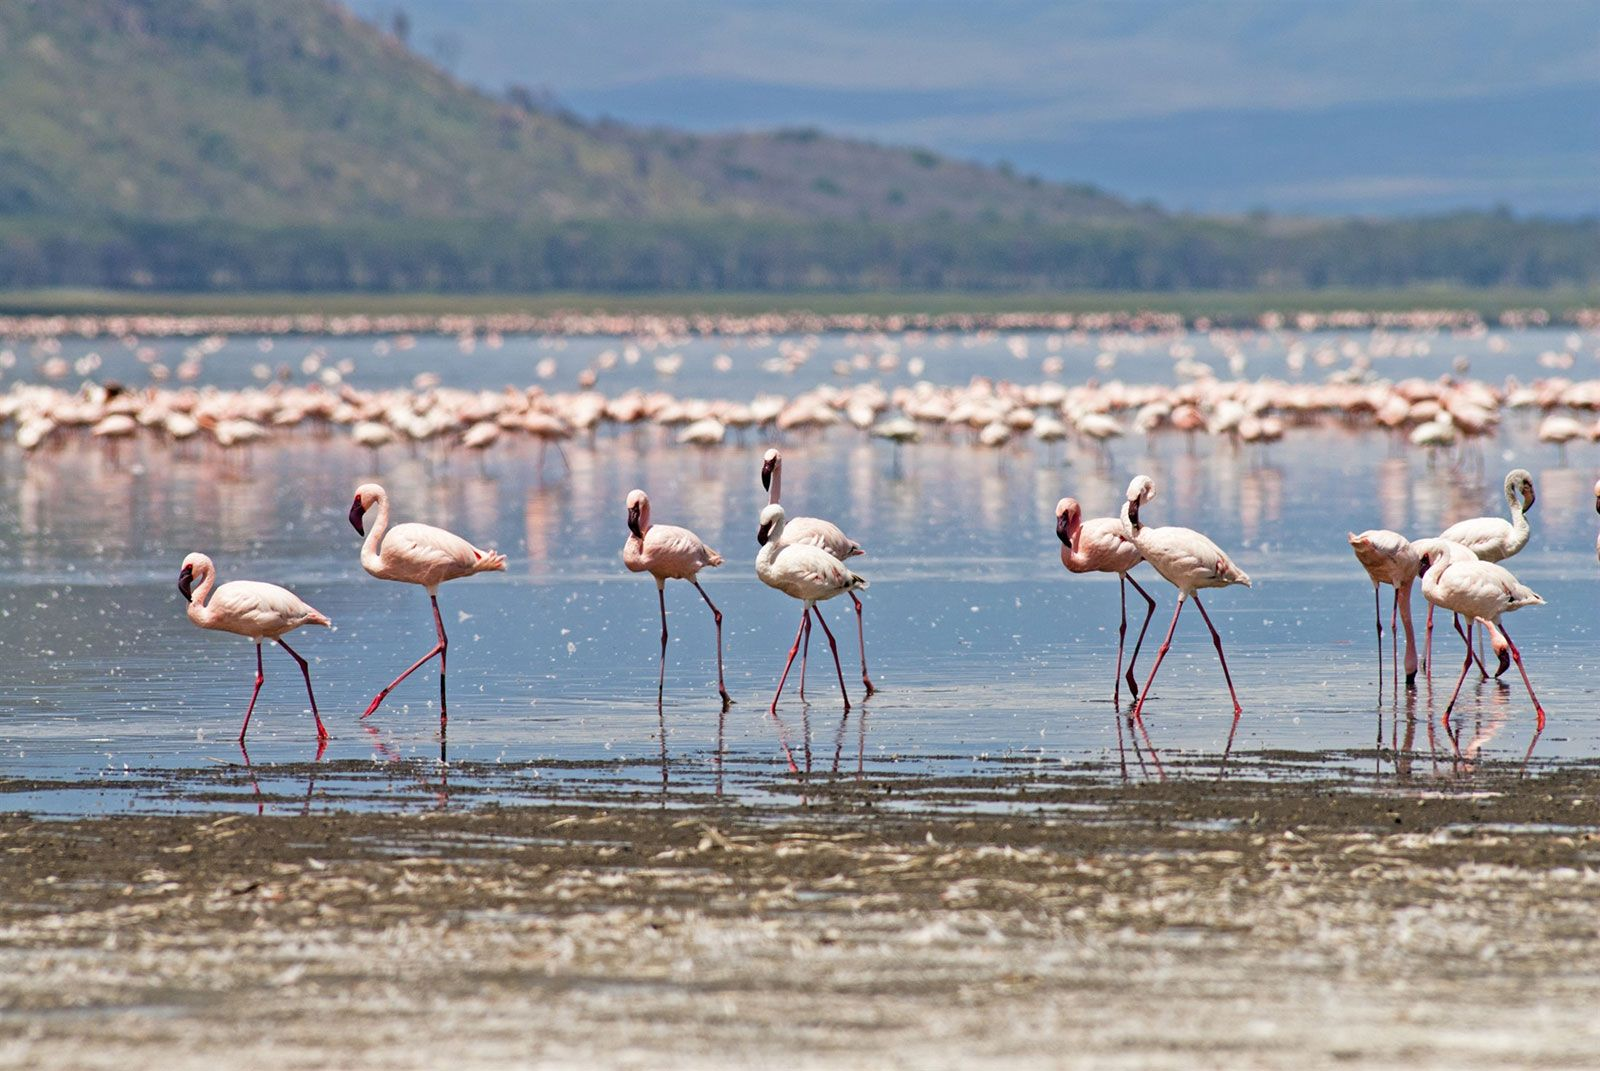 Flamingos and the Masai Mara